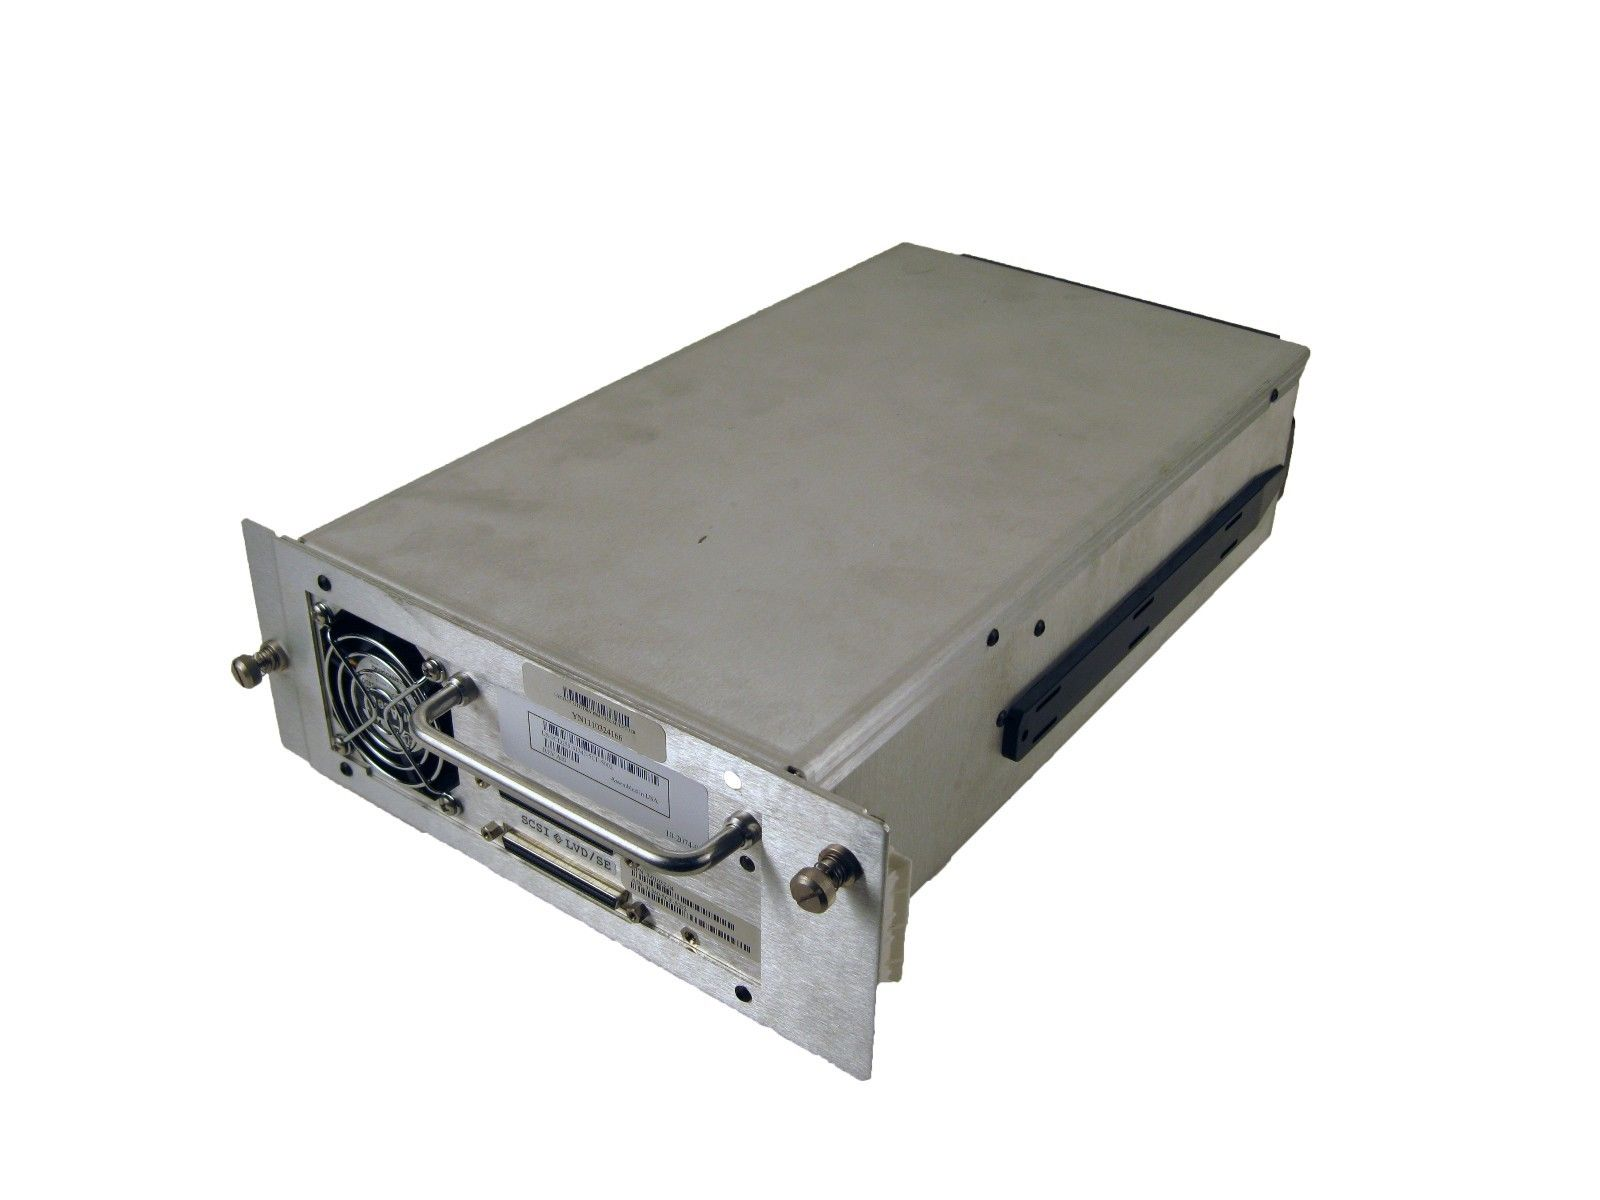 Dell CD259 PowerVault 136T LTO-2 SCSI LVD Loader Drive